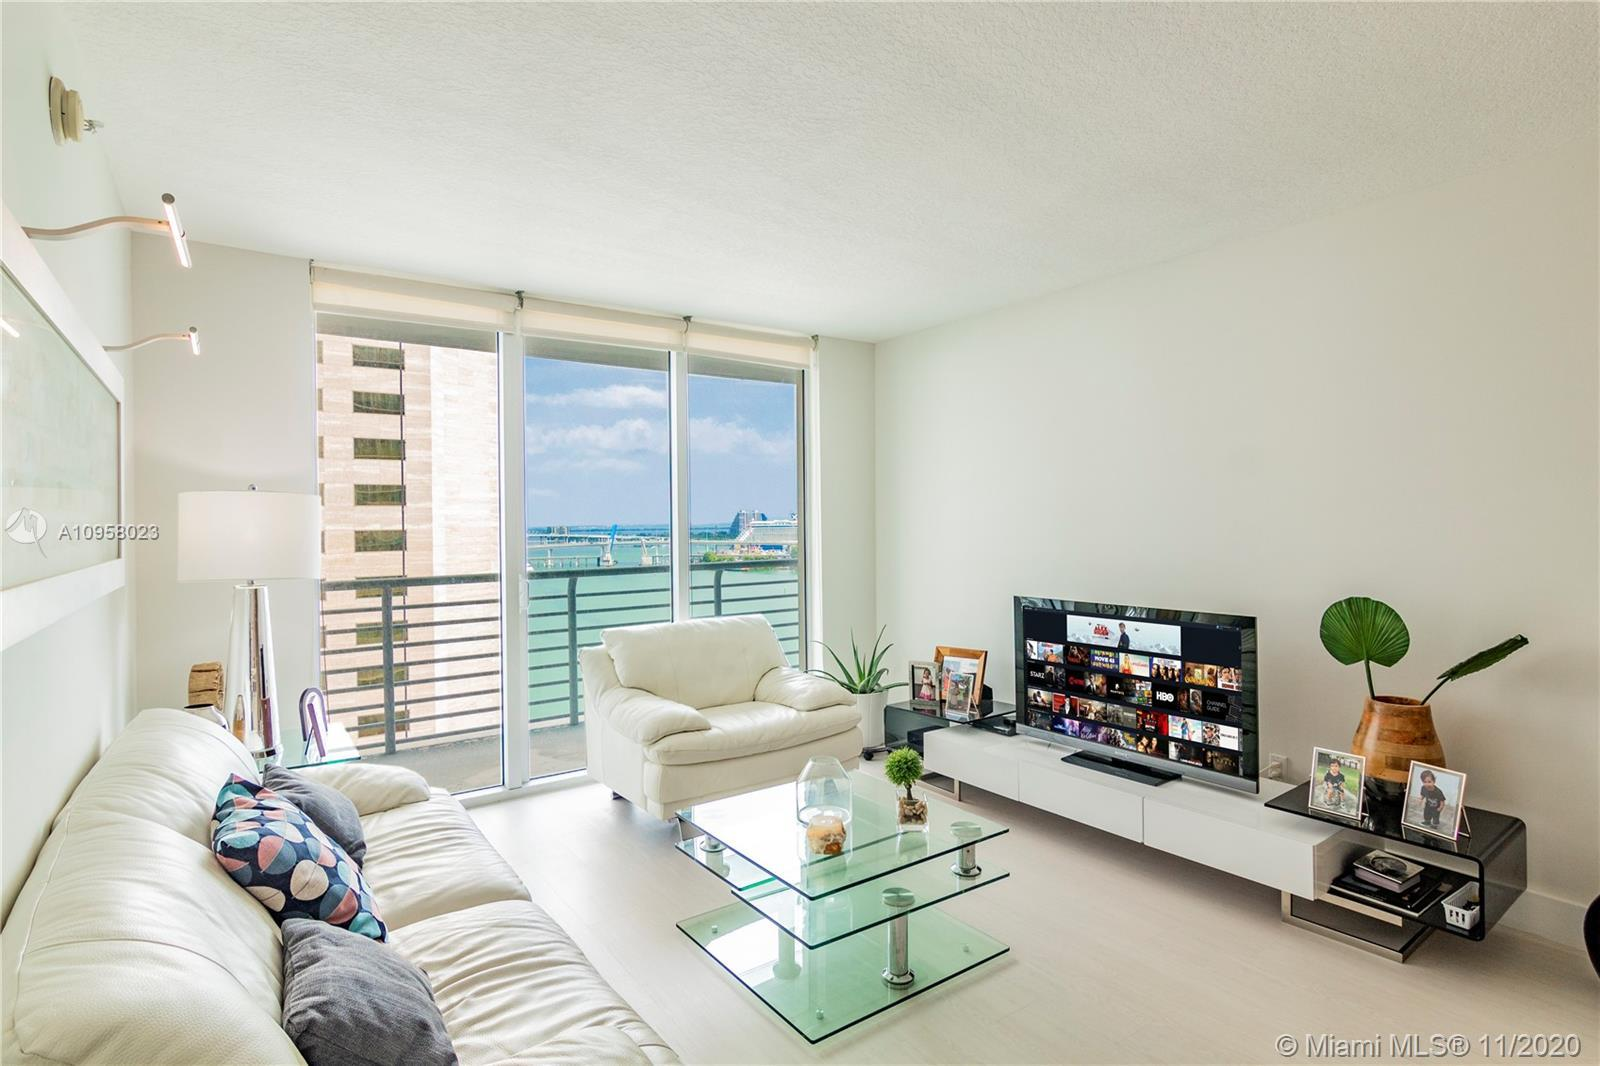 Beautifully finished 2 bedroom, 2 bathroom unit in the Heart of Downtown and Brickell.  Capture Beau